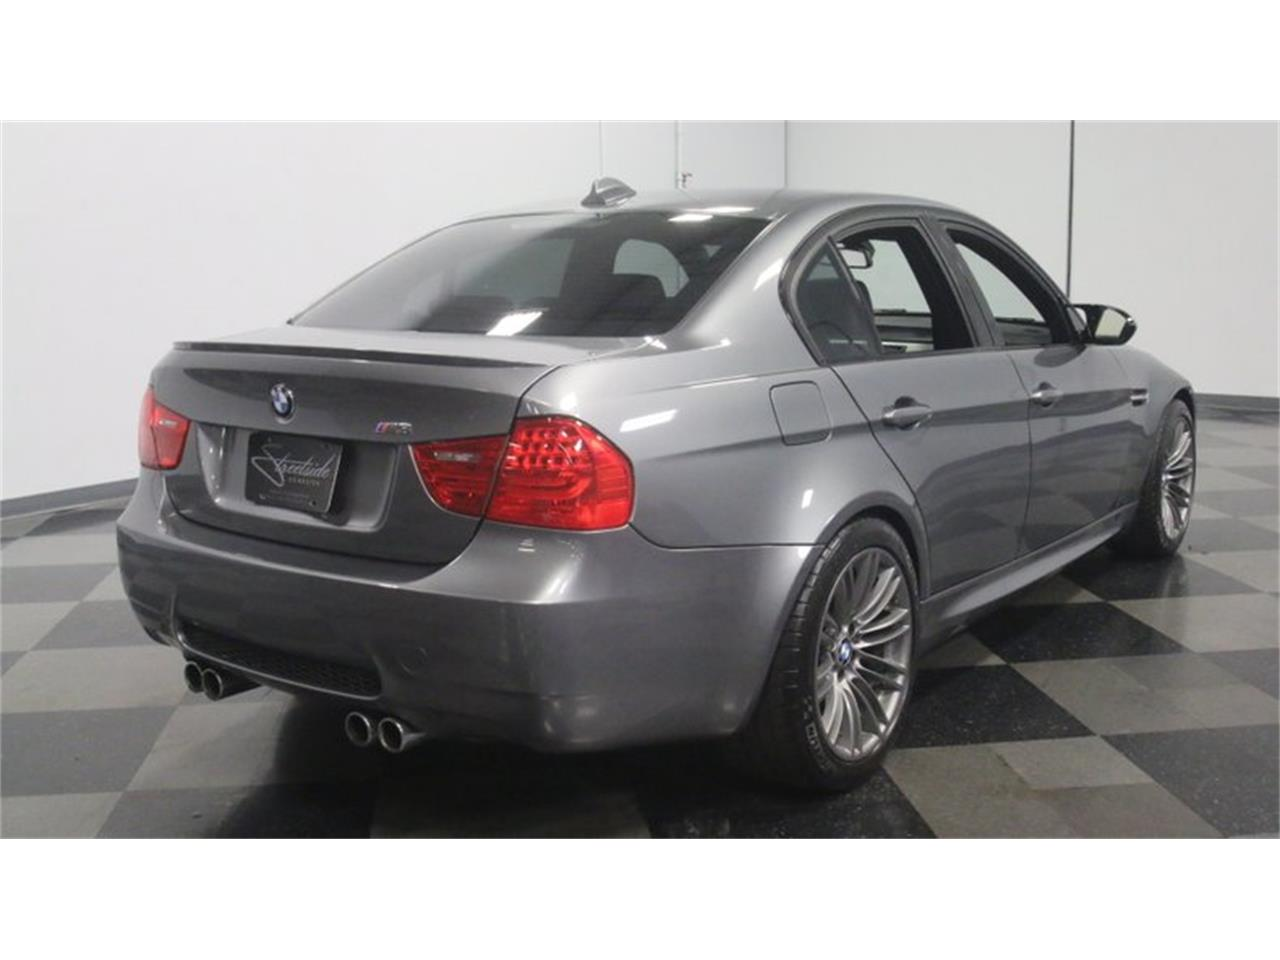 2010 BMW M3 for sale in Lithia Springs, GA – photo 13